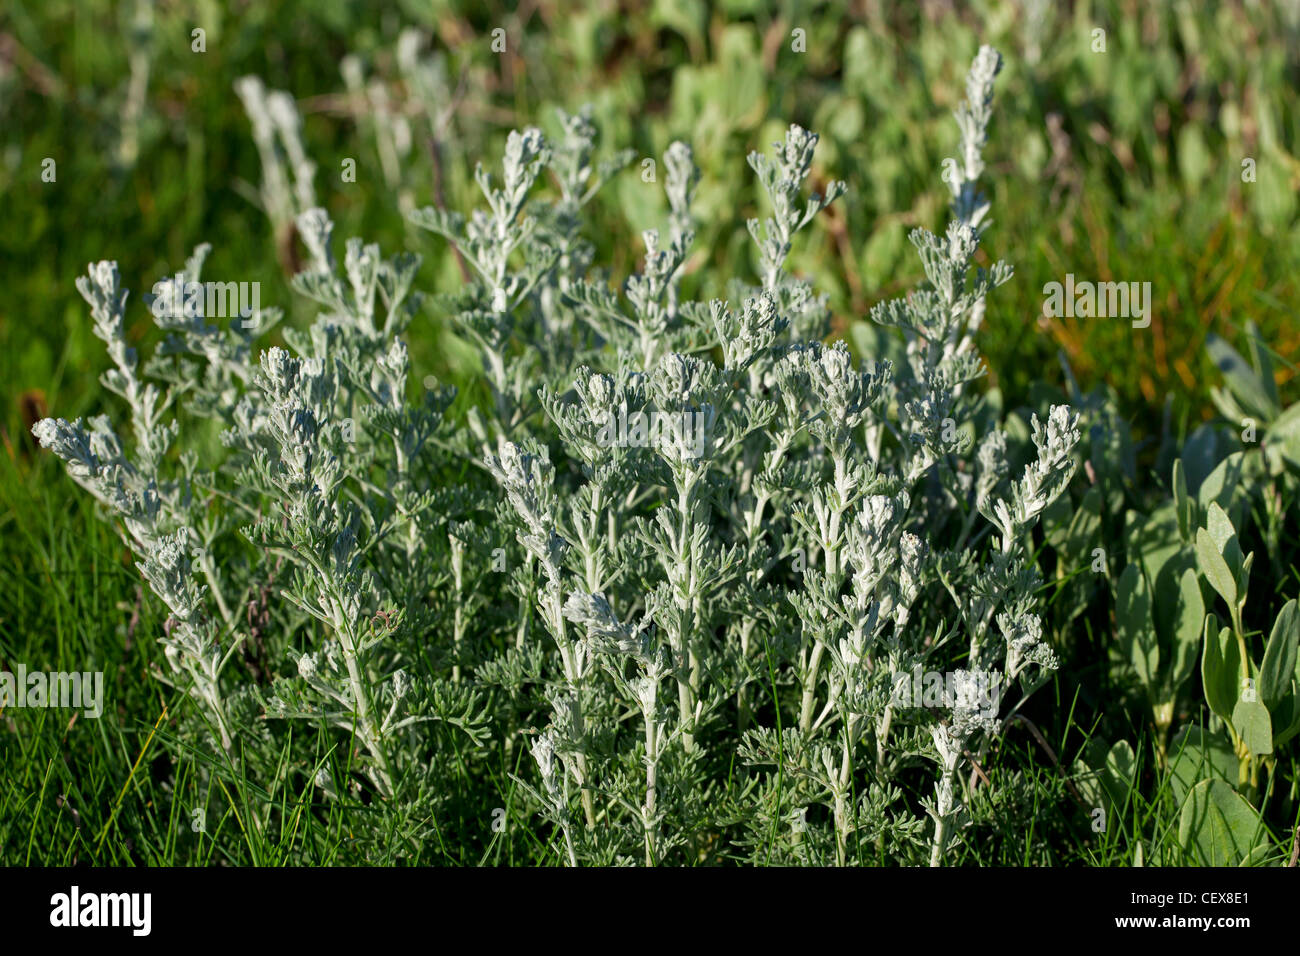 wormwood or artemisia maritima Chauhara- artemisia maritima is a herb mentioned in the ayurvedic pharmacopoeia for the treatment of pain, swelling, pin worms, alopecia, indigestion, fever and difficulty in micturition.